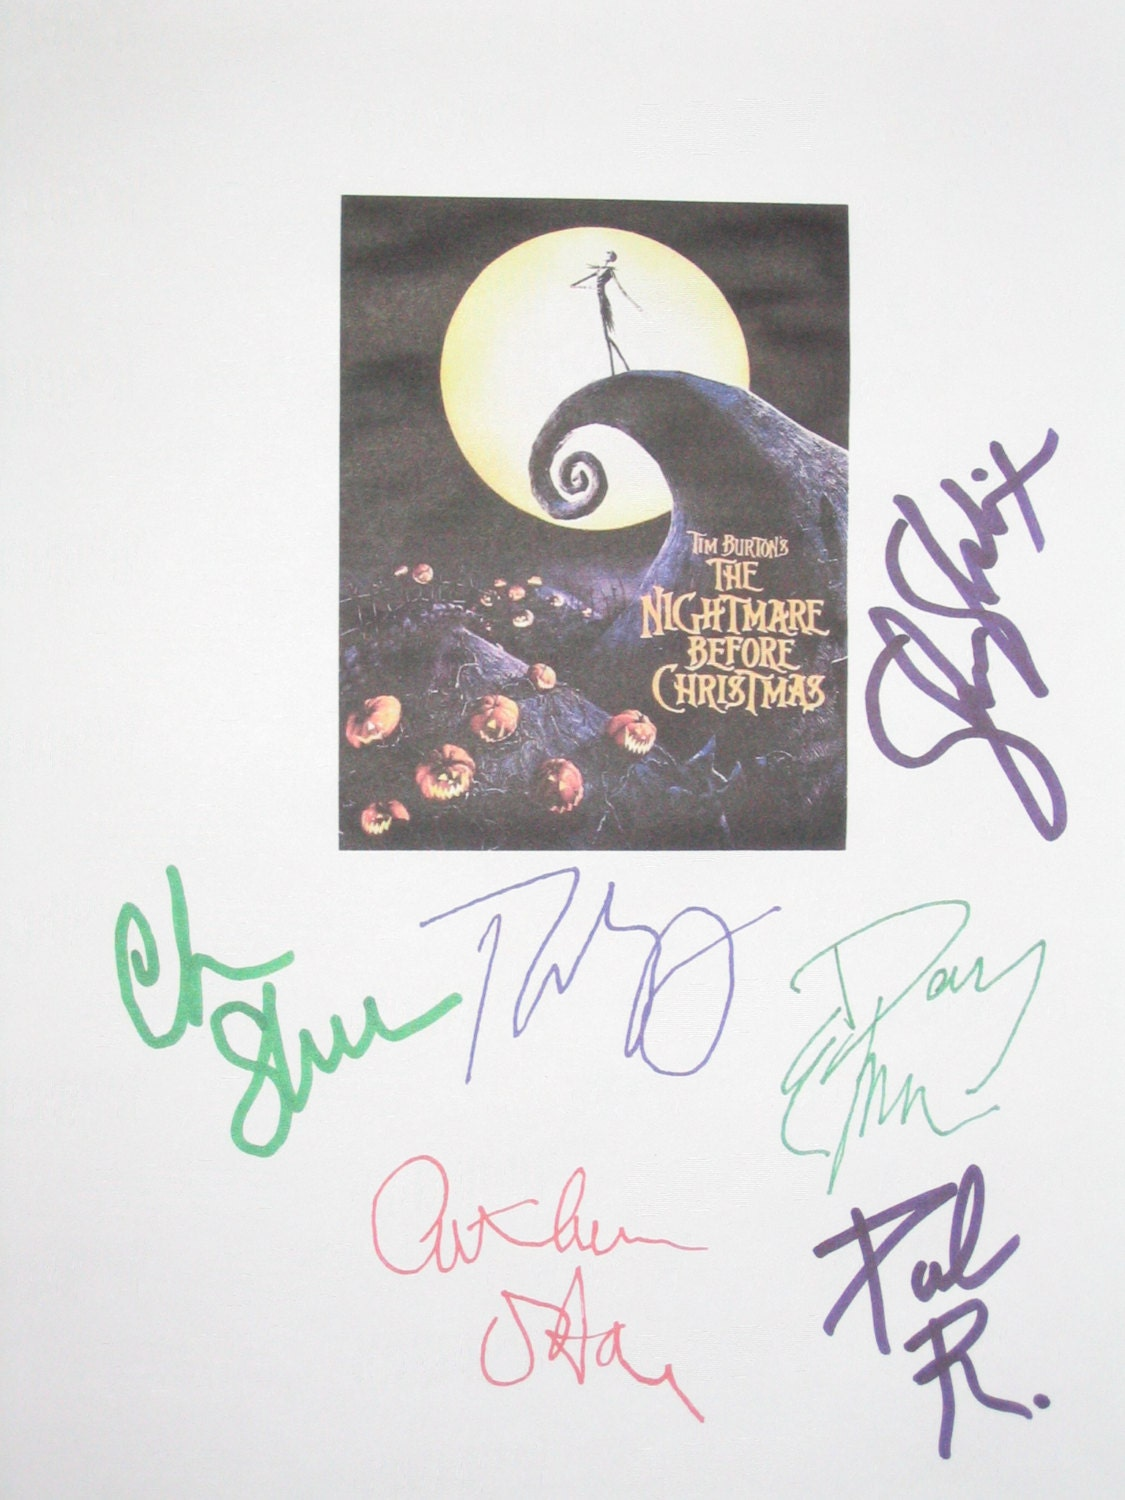 The Nightmare Before Christmas Signed Movie Film Script | Etsy